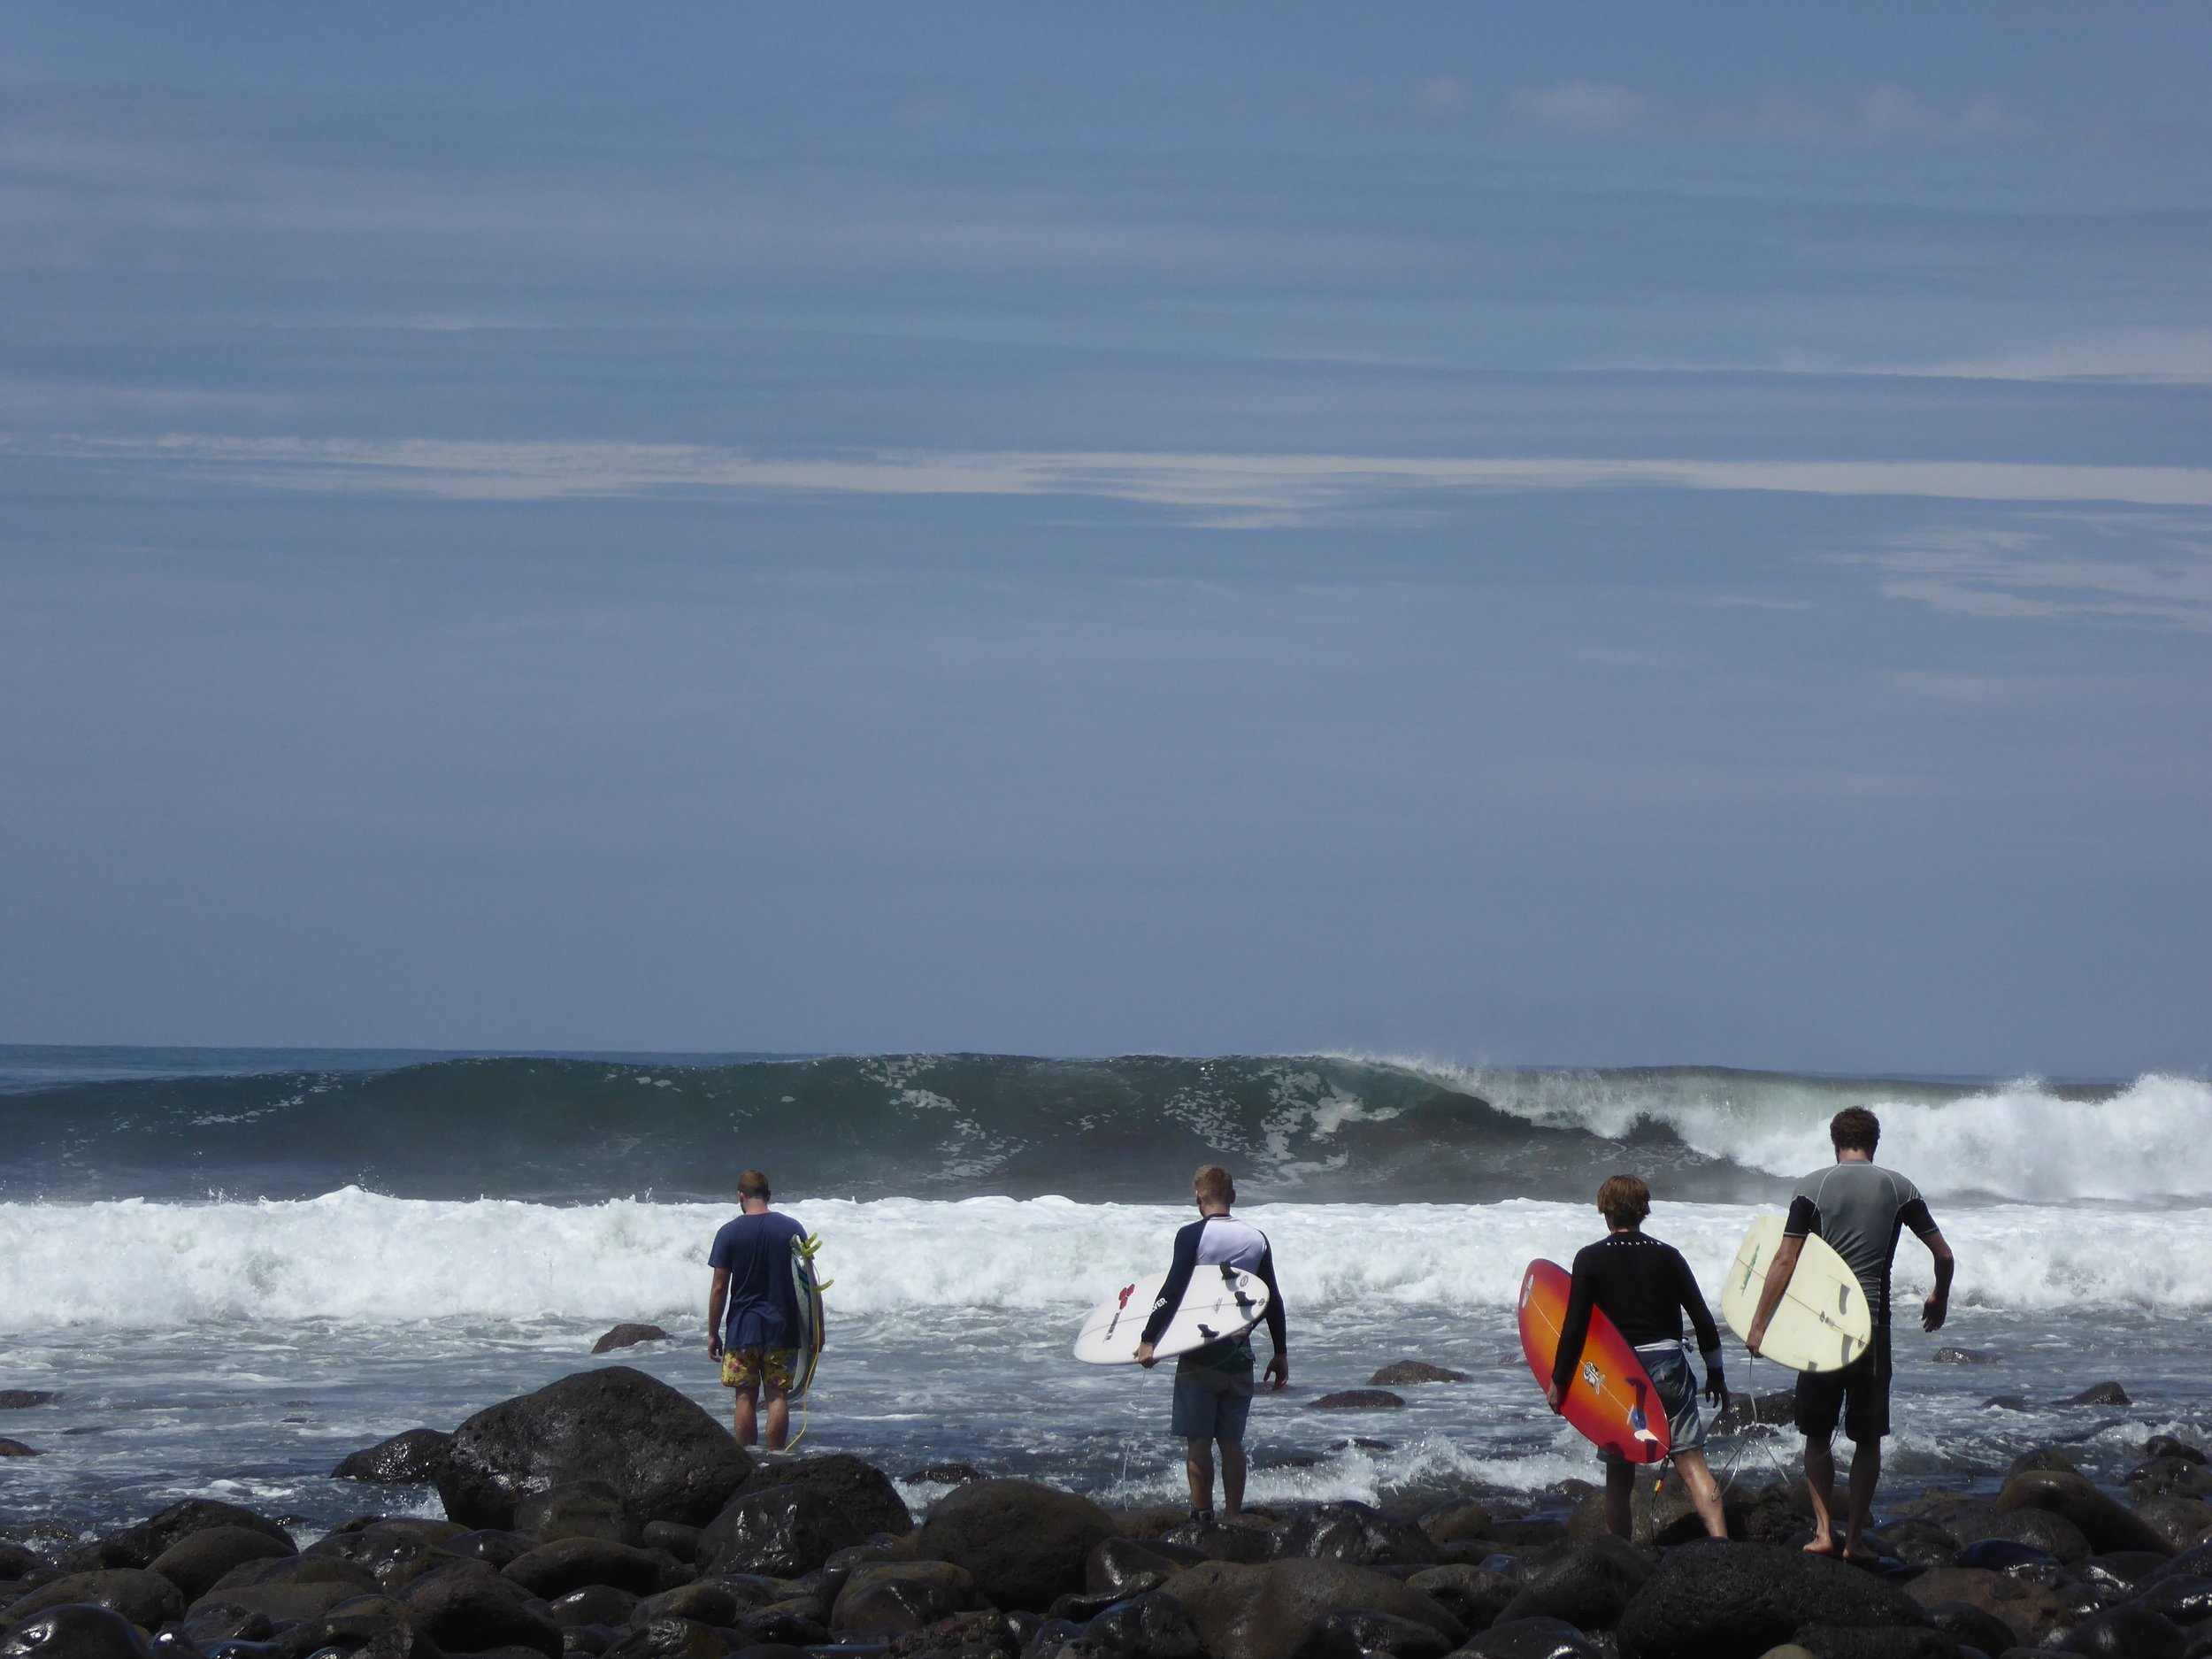 Mike and group of surfers - Punta Roca, El Salvador